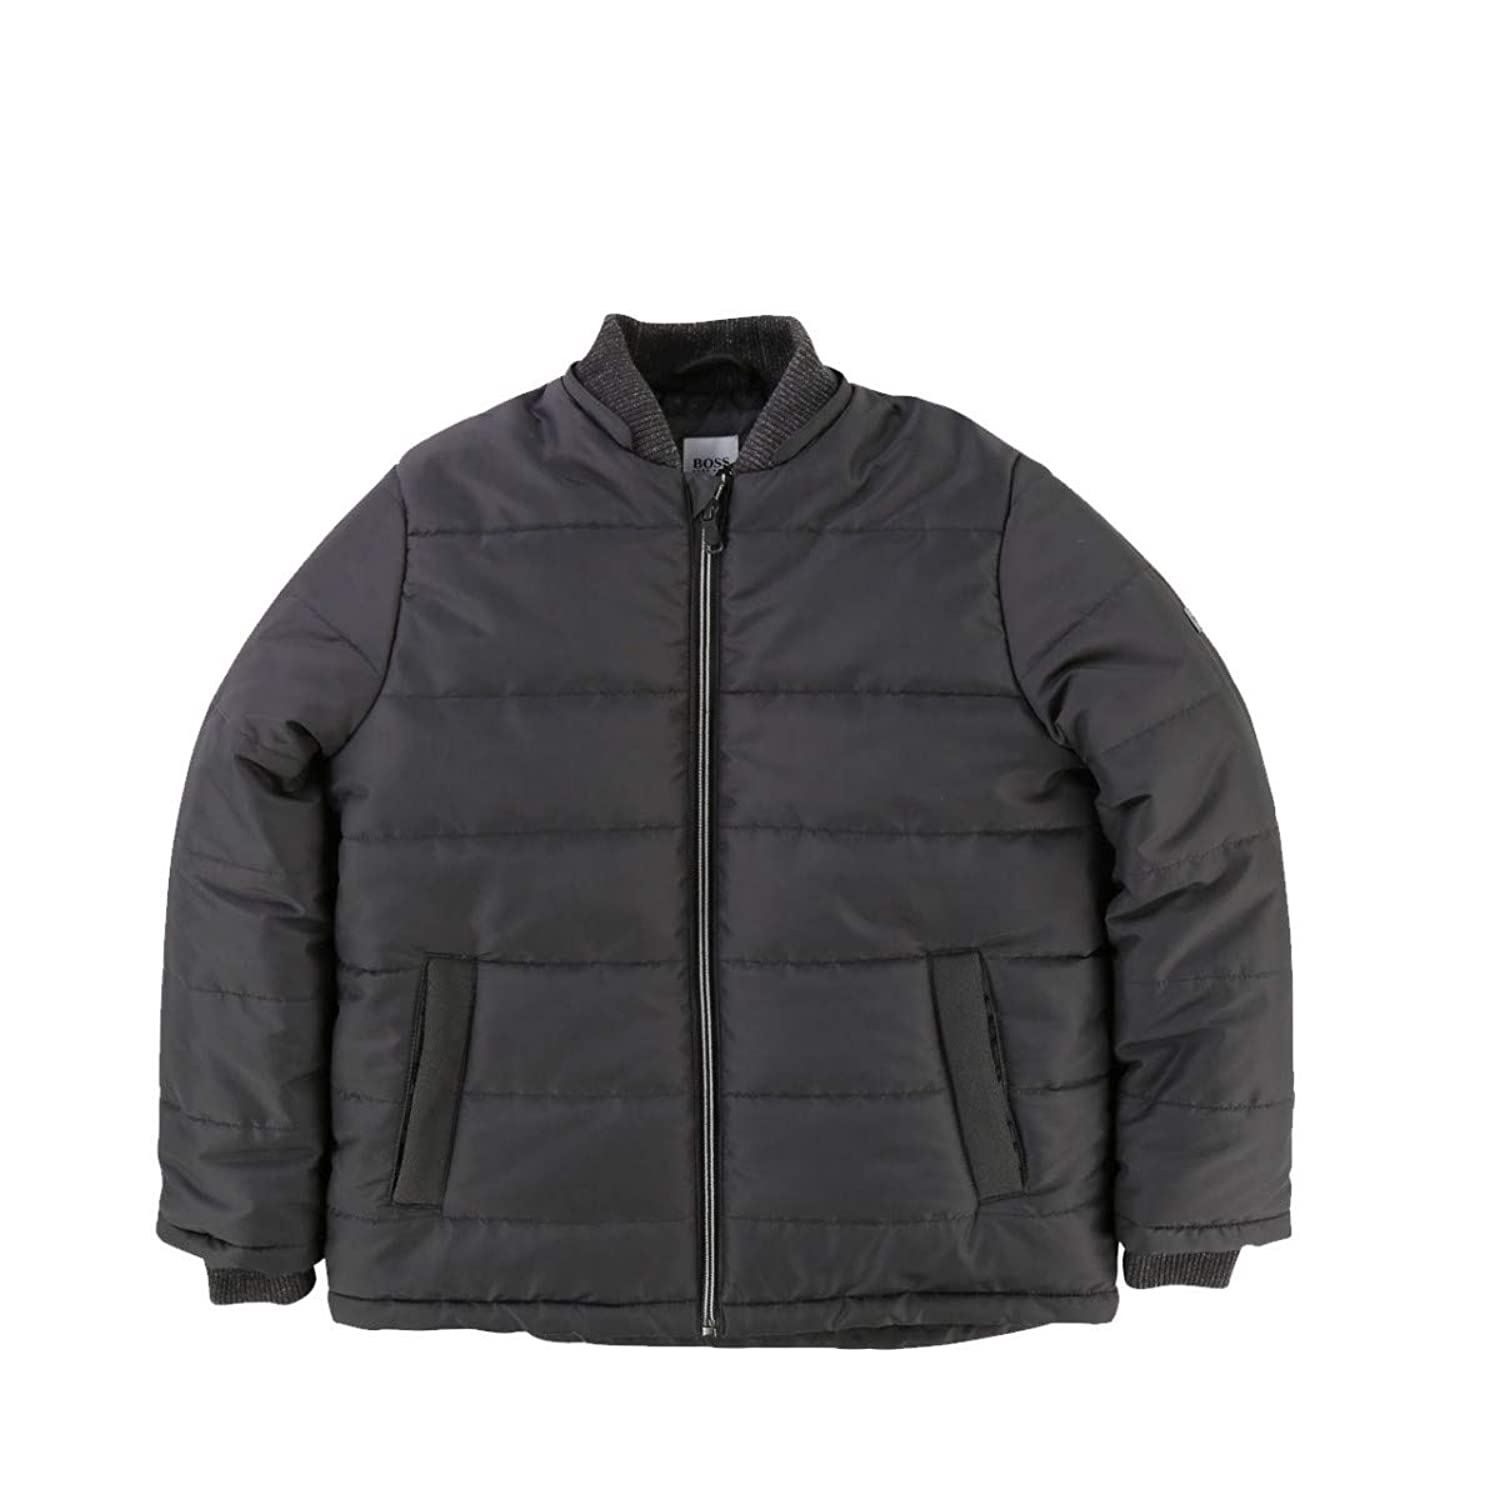 BOSS OUTERWEAR ボーイズ